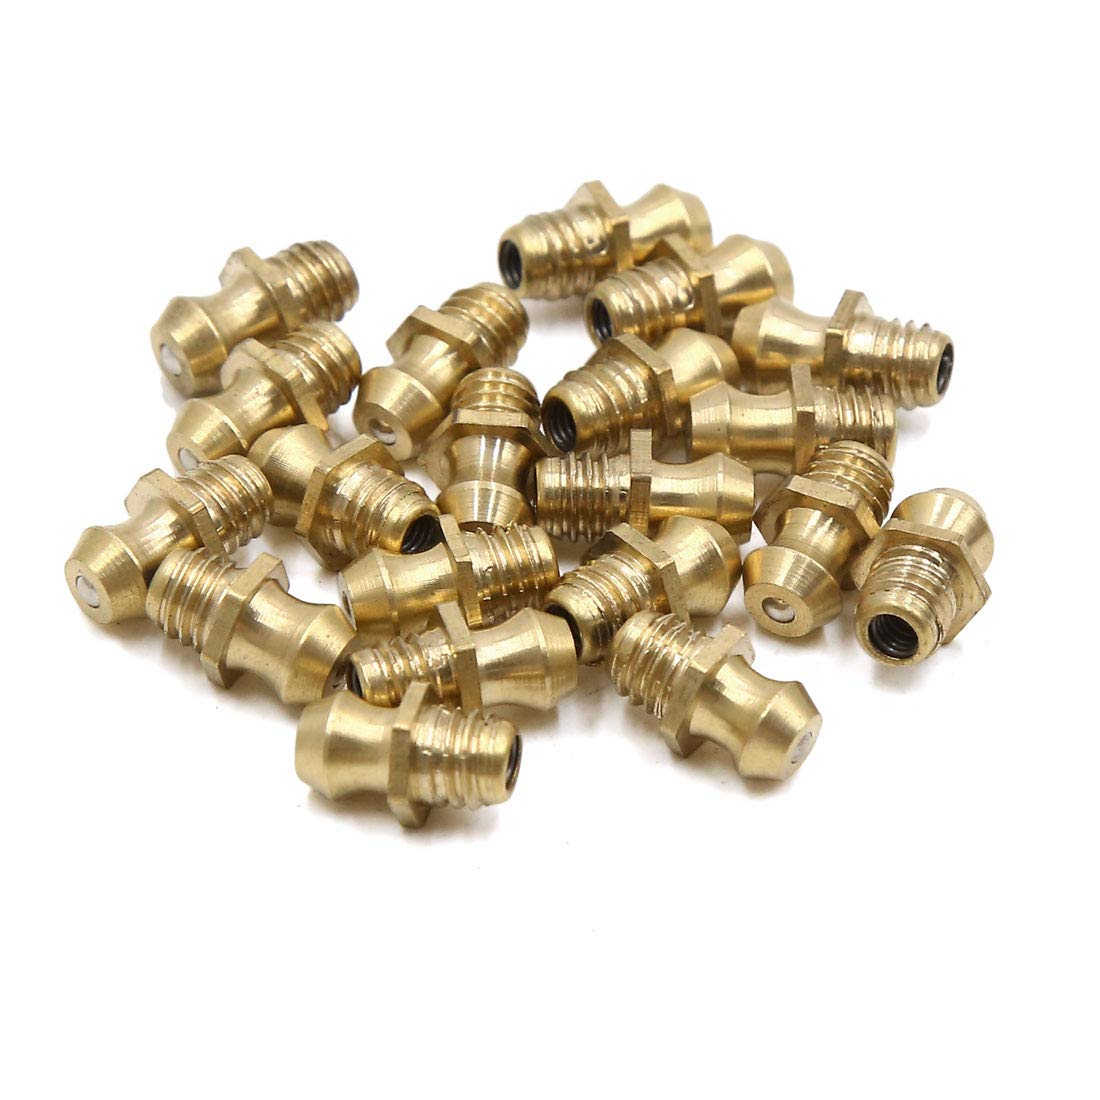 Uxcell 20pcs M6 Thread 1mm Pitch Brass Straight 45 Degree 90 Degree Grease Nipple Fitting For Motorcycle Car